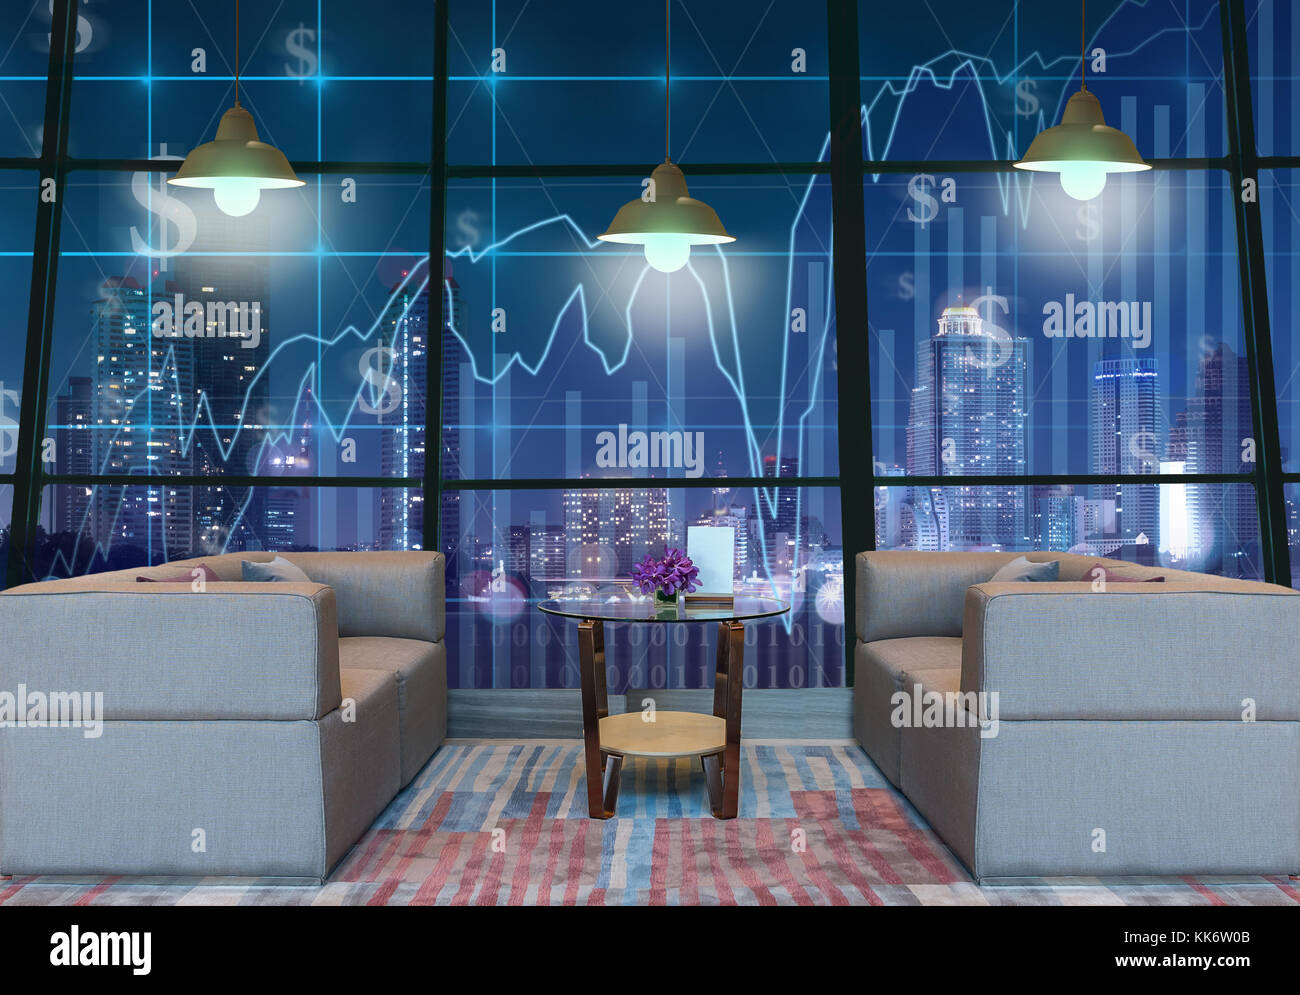 Lobby area of a hotel which can see Trading graph on the cityscape at night background with lighting,Business financial - Stock Image